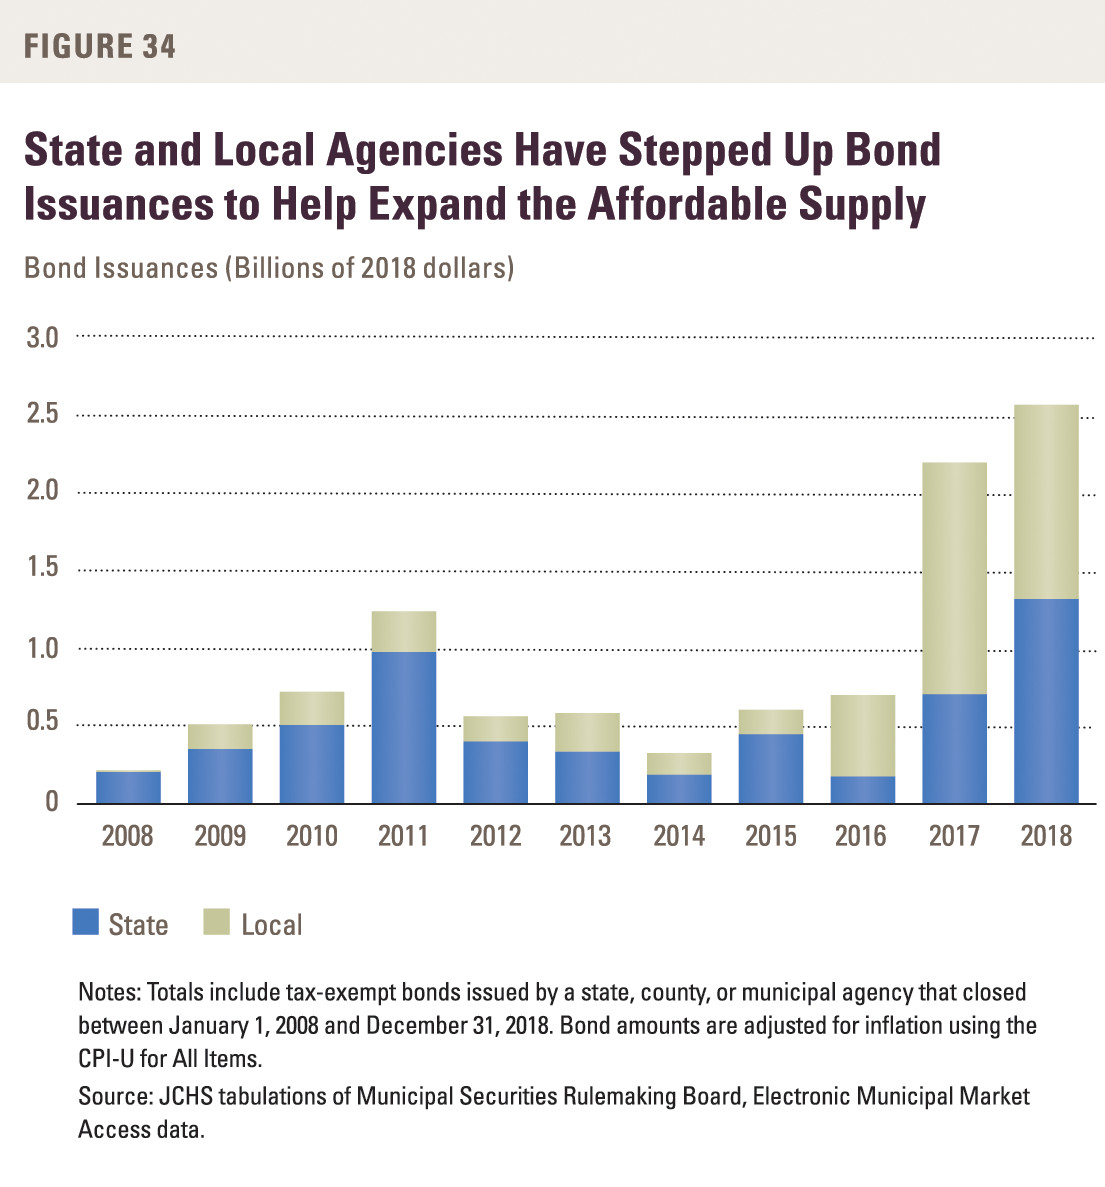 A chart showing the increase in bond issuance by state and local agencies over the last few years.